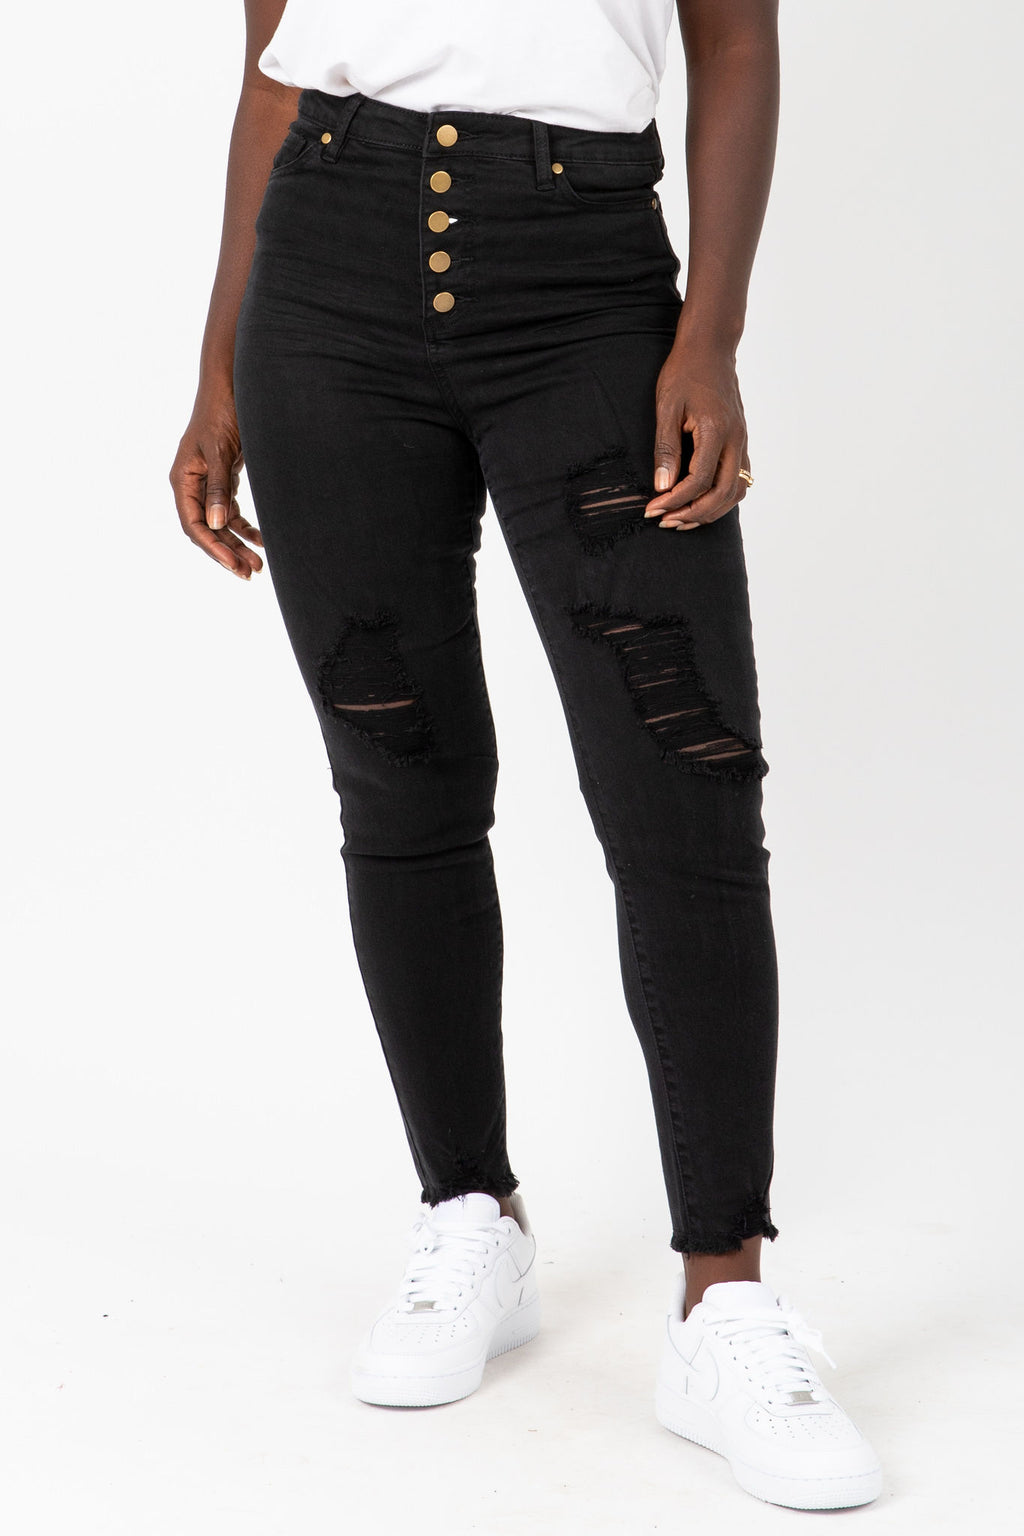 The David Front Button Jeans in Black, studio shoot; front view